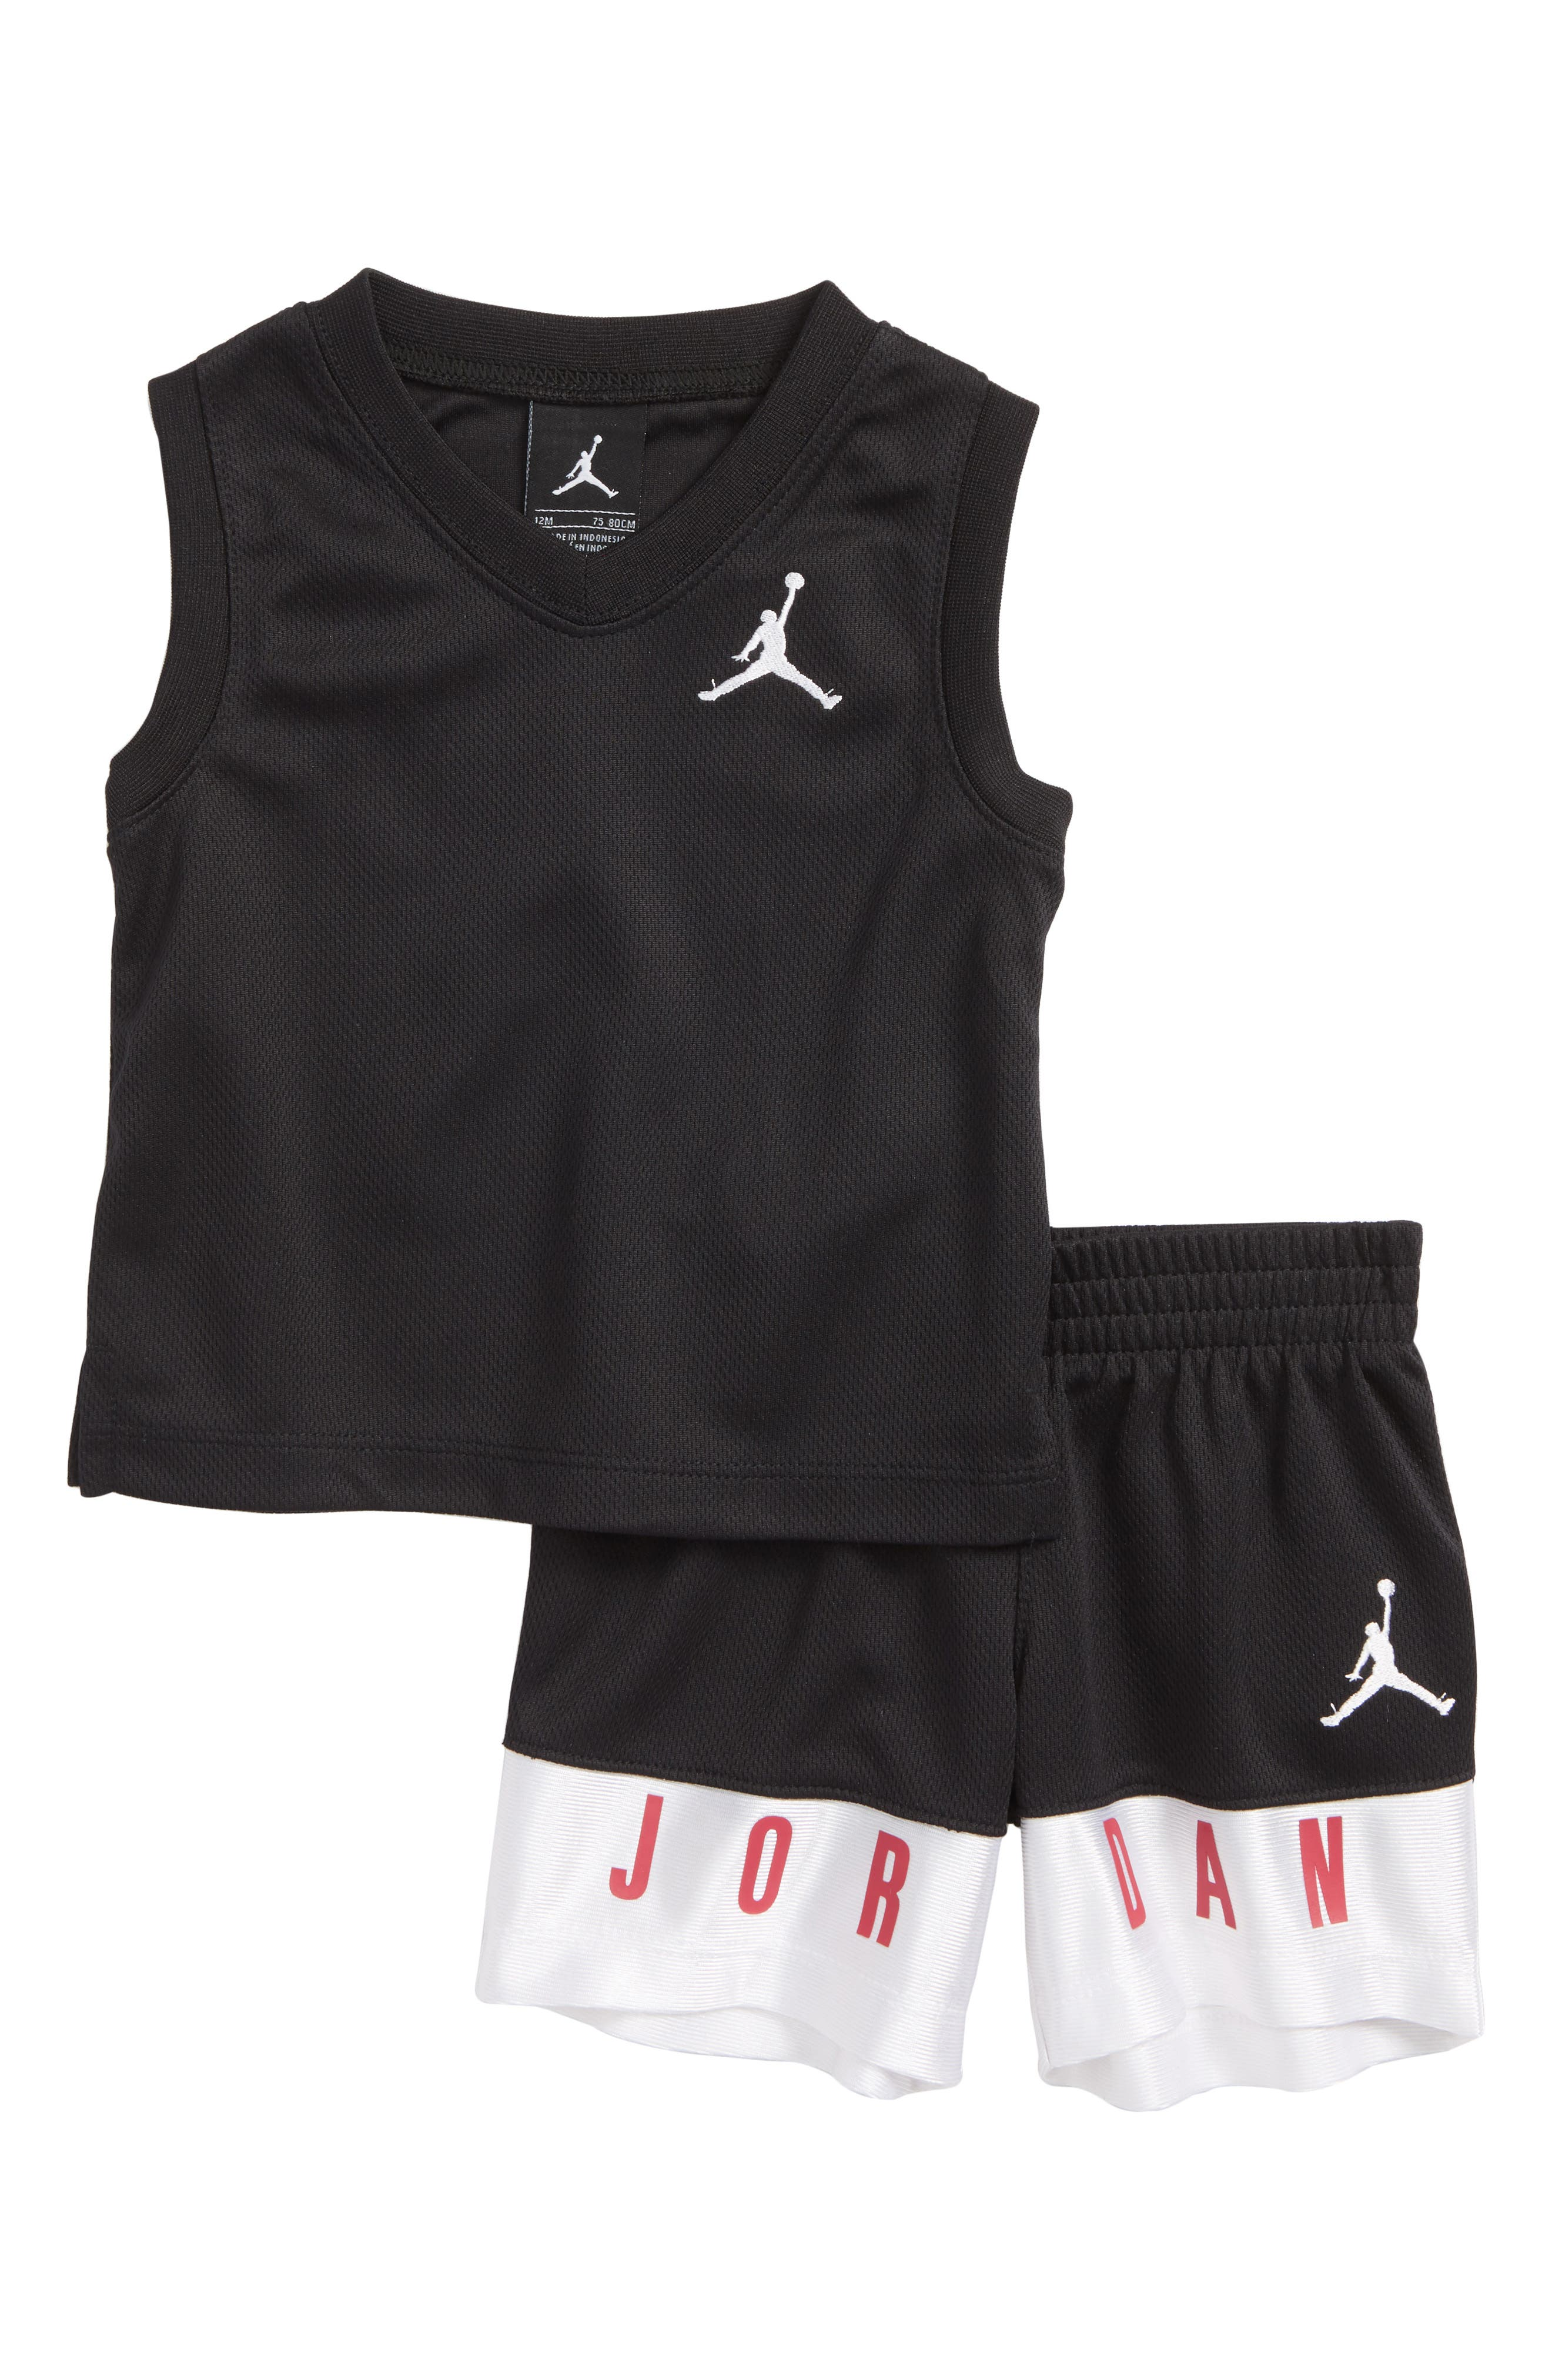 AJ23 Jersey Tank Top & Mesh Shorts Set,                         Main,                         color, Black